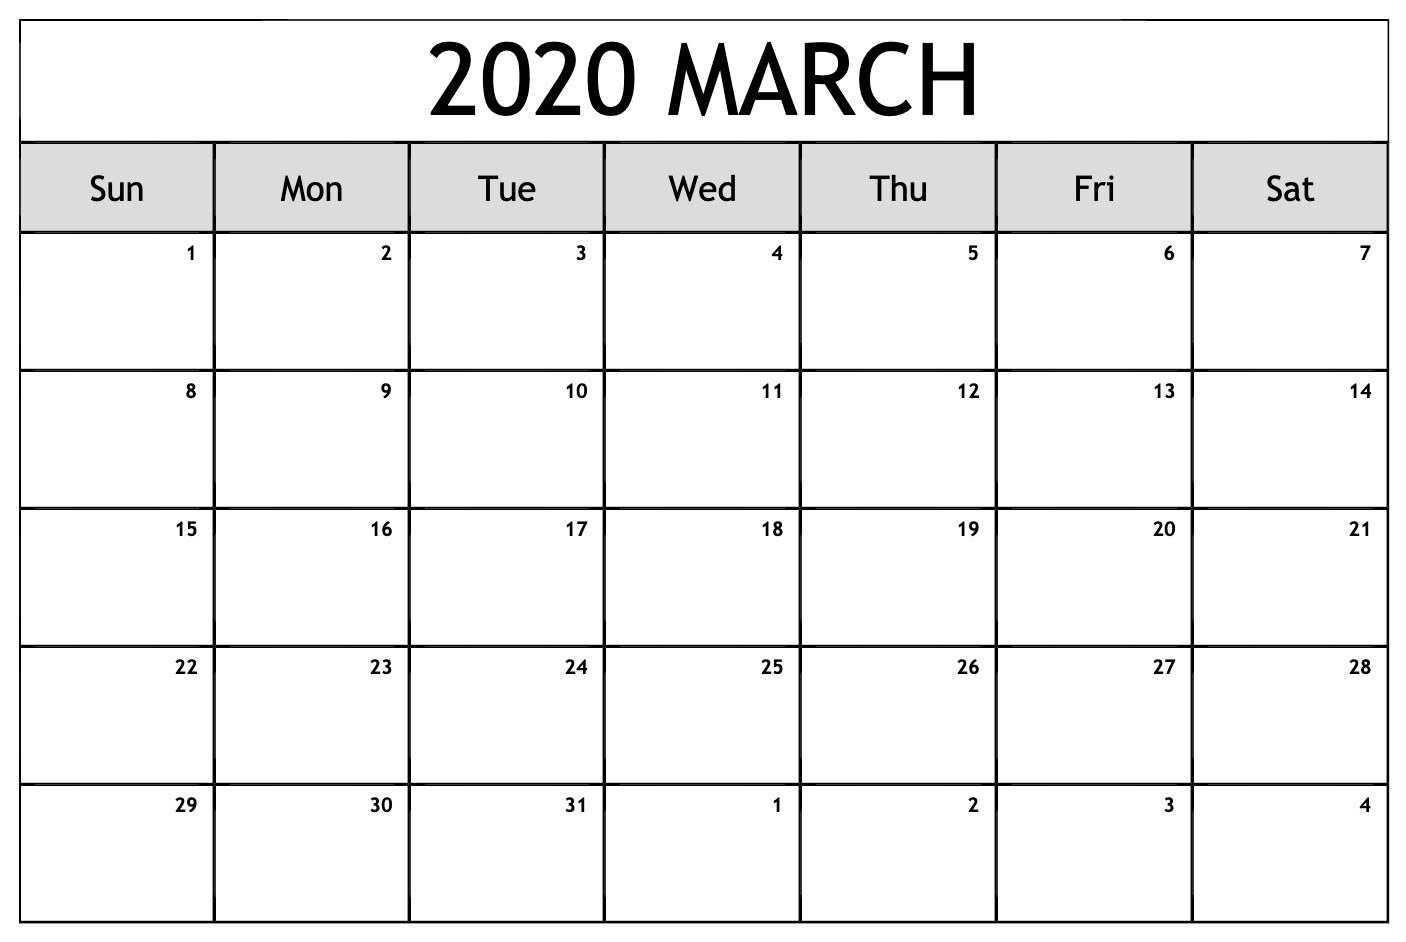 March 2020 Calendar Template Wallpaper